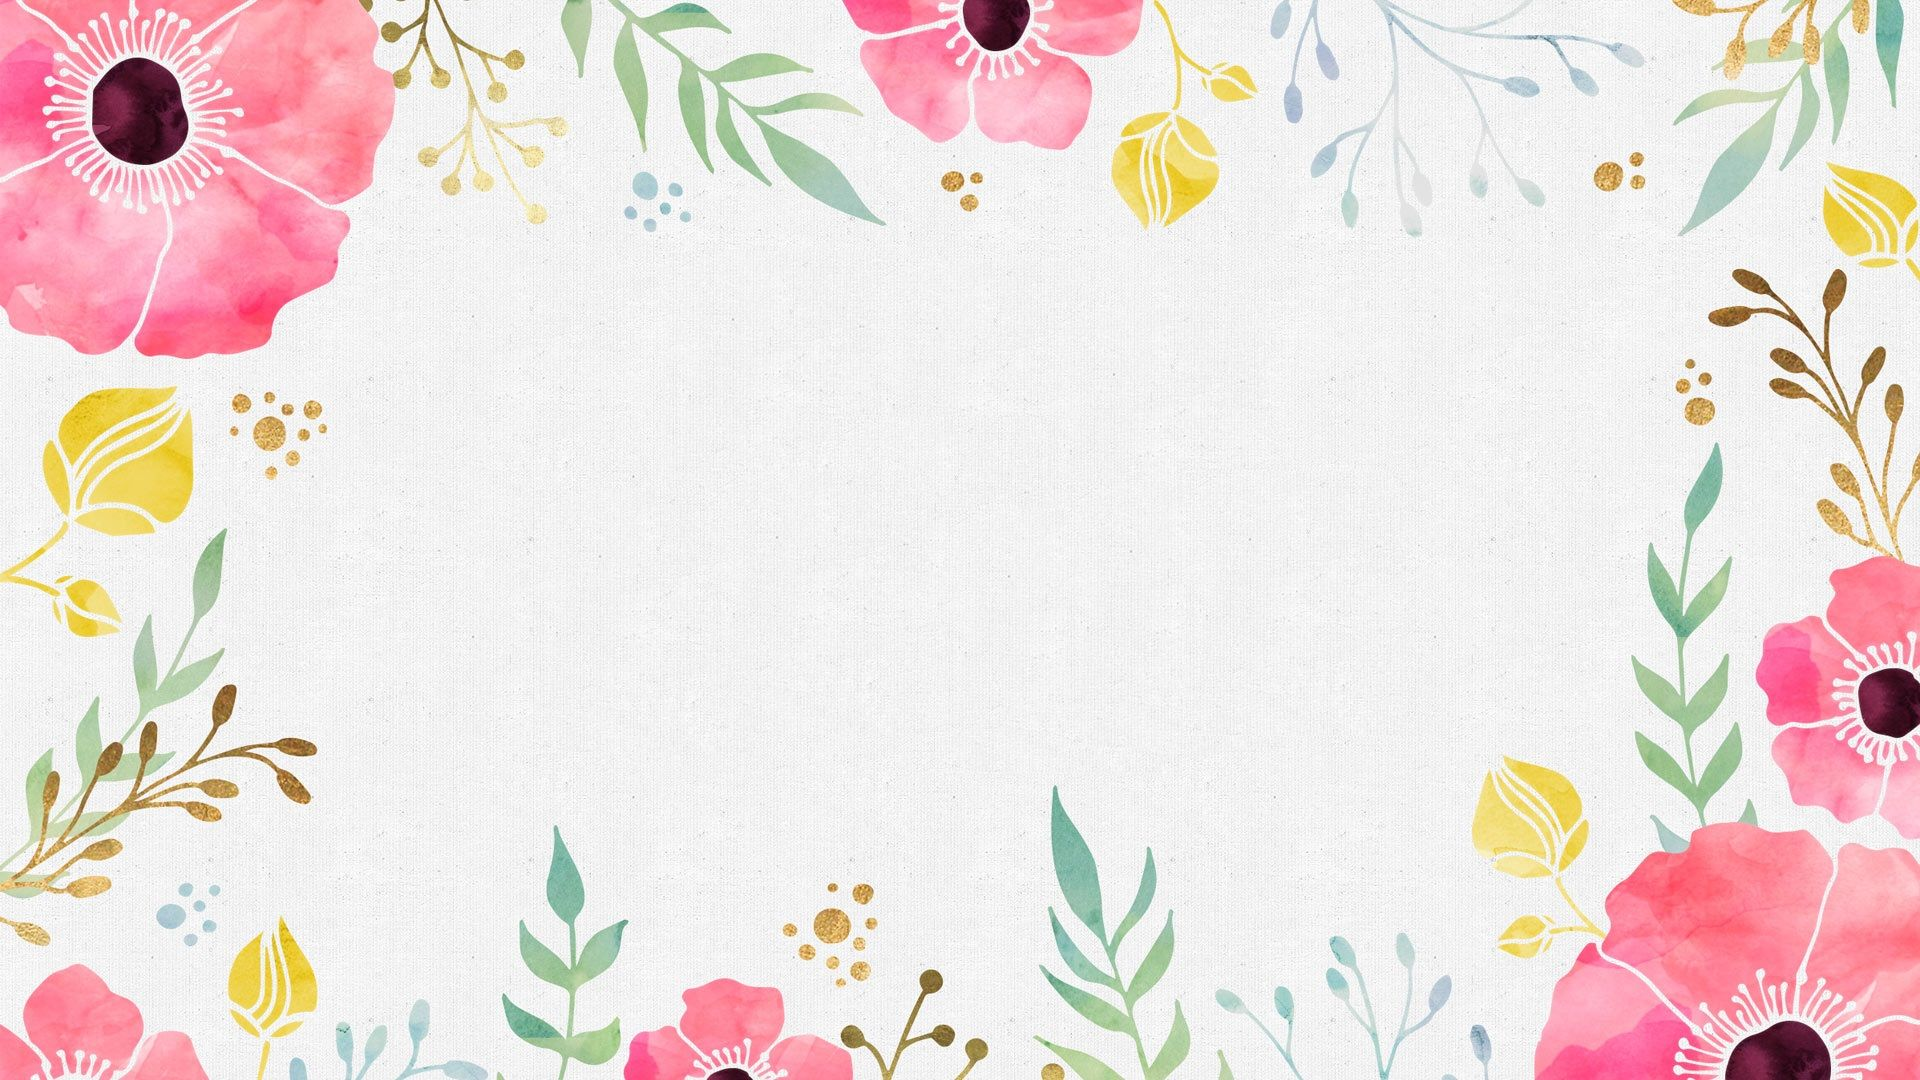 Watercolor Flowers Desktop Wallpaper